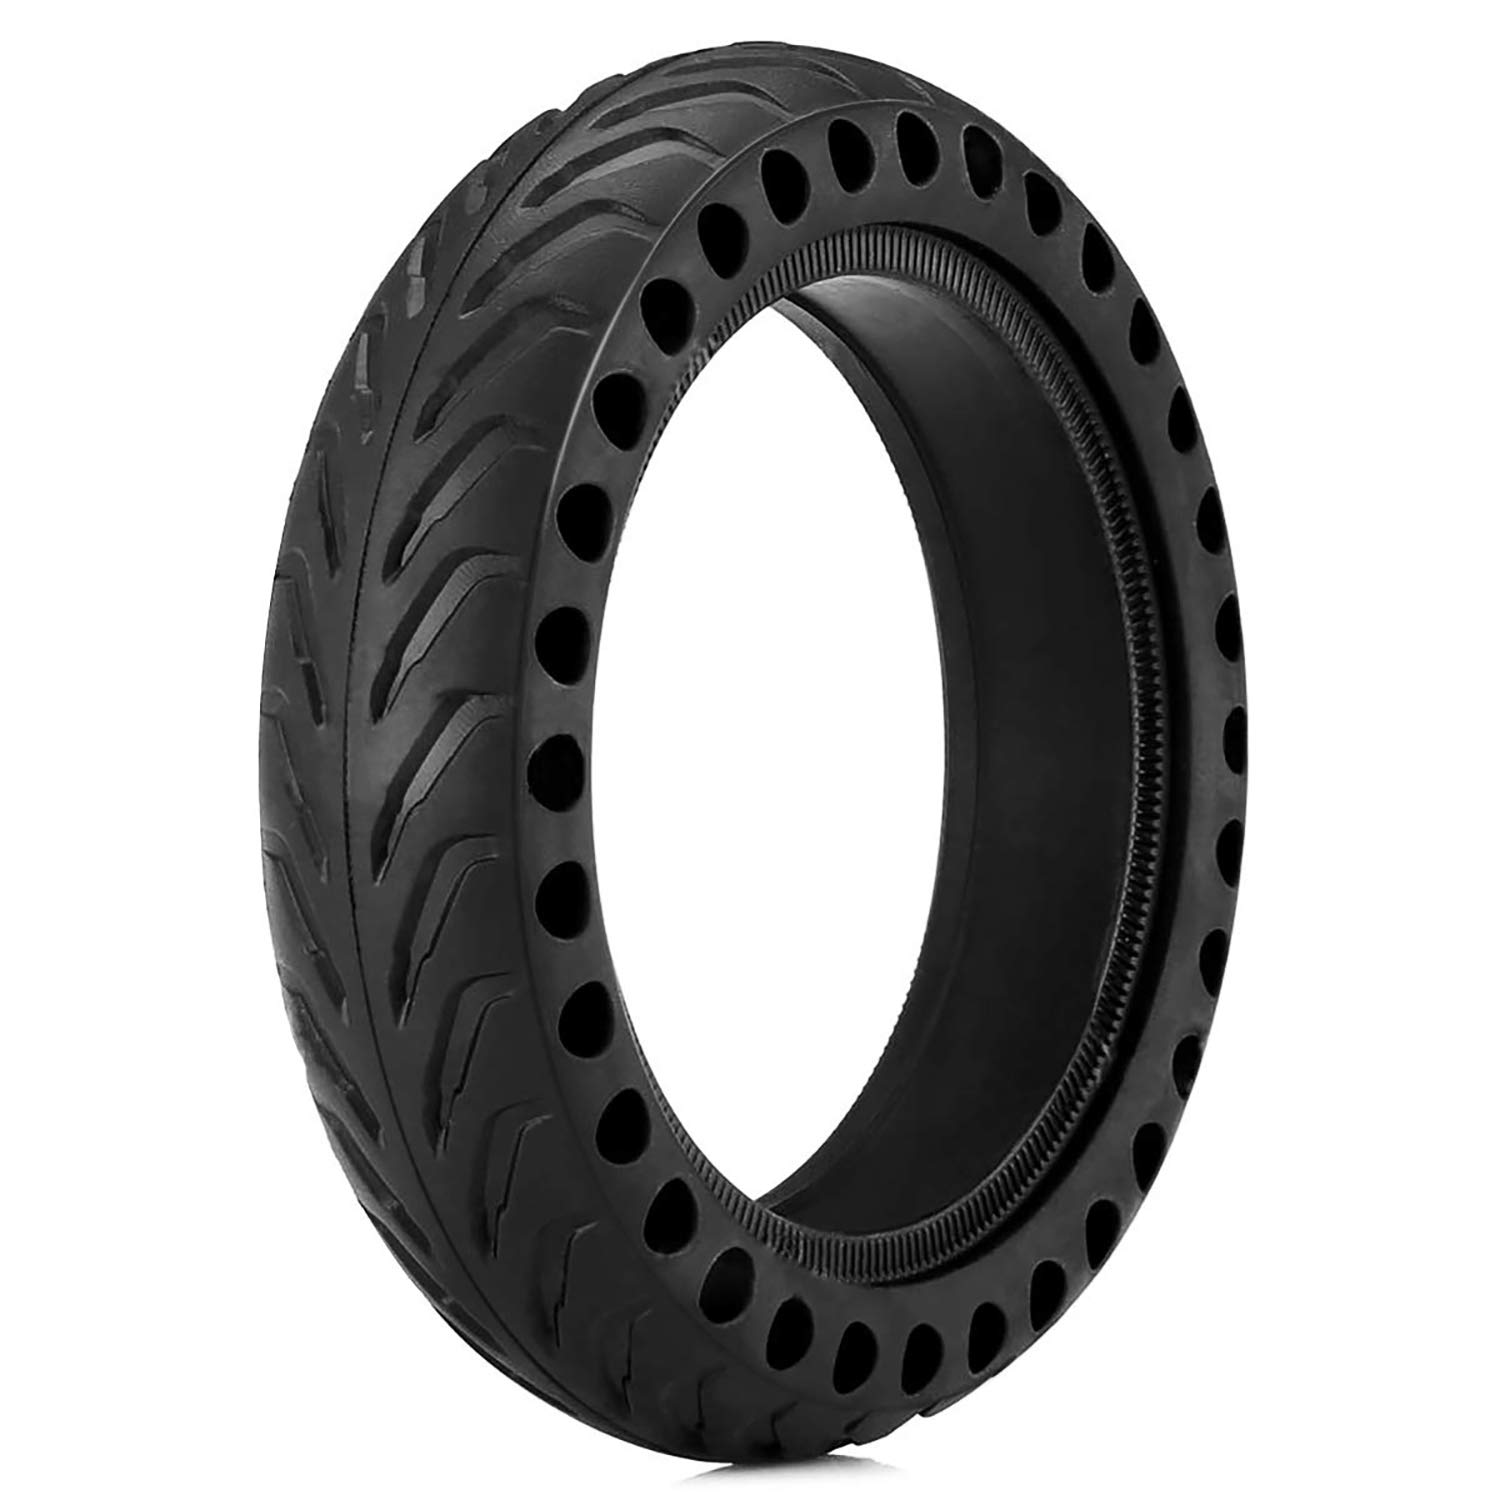 WiLEES Solid Tire Mijia Scooter Replacement Tire for Xiaomi Mi M365 Electric Scooter Gotrax gxl Scooter 8.5 inches ... by WiLEES